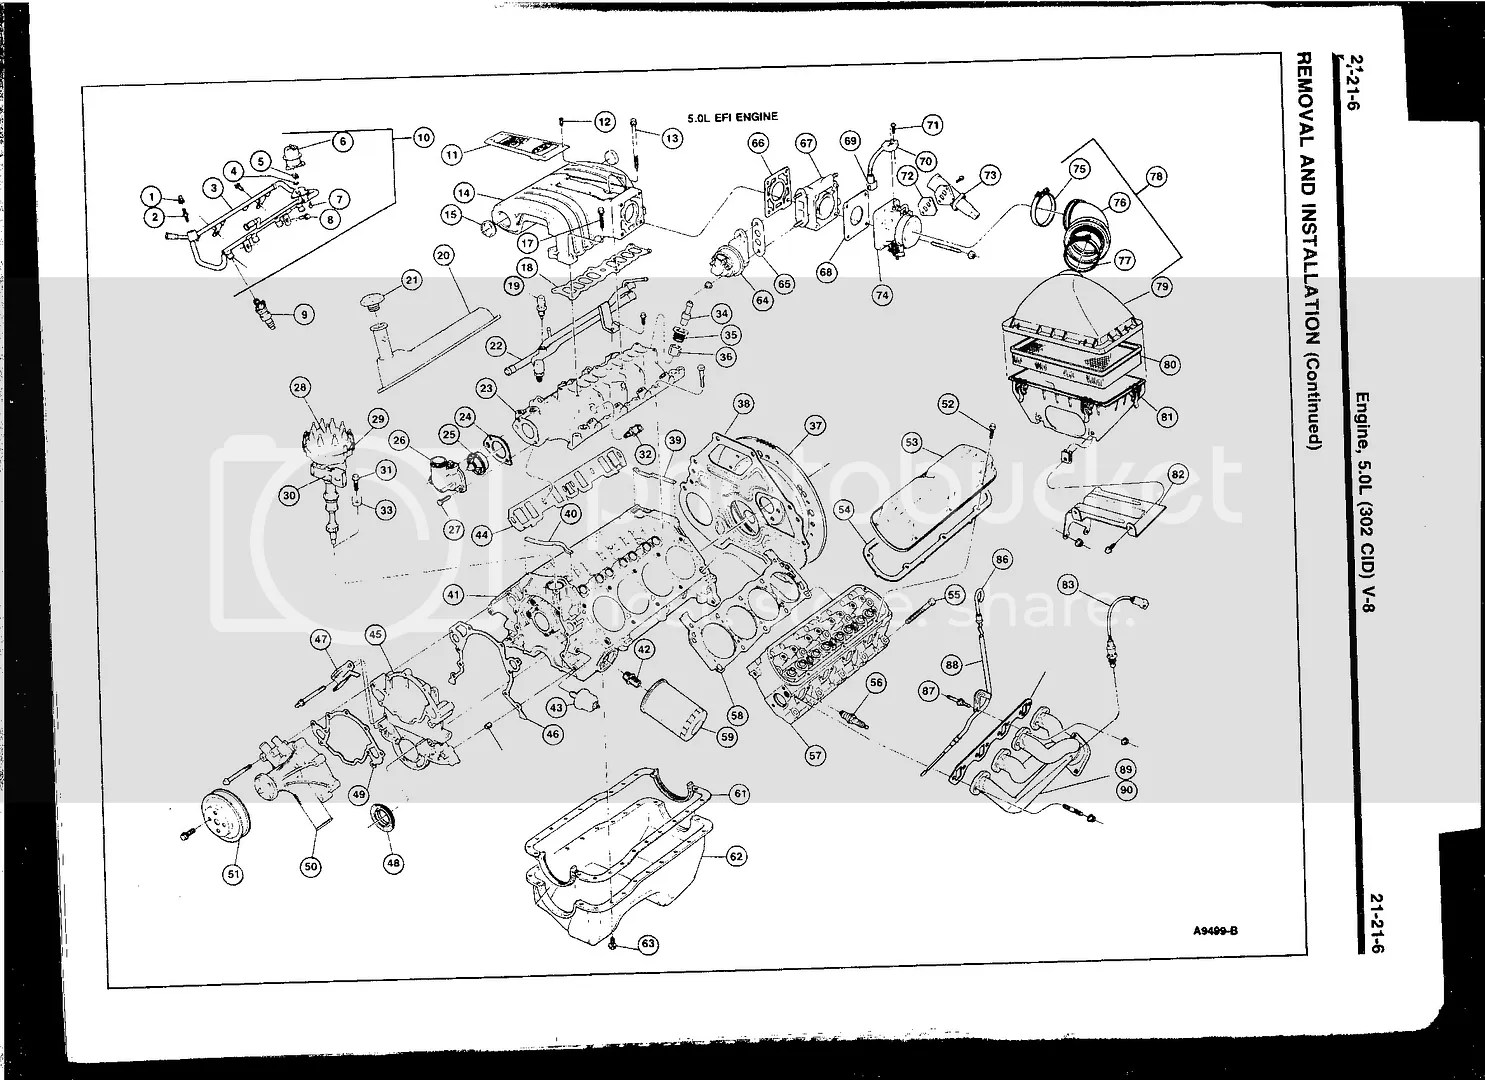 Diagram or picture of 302 assembly (front accessories